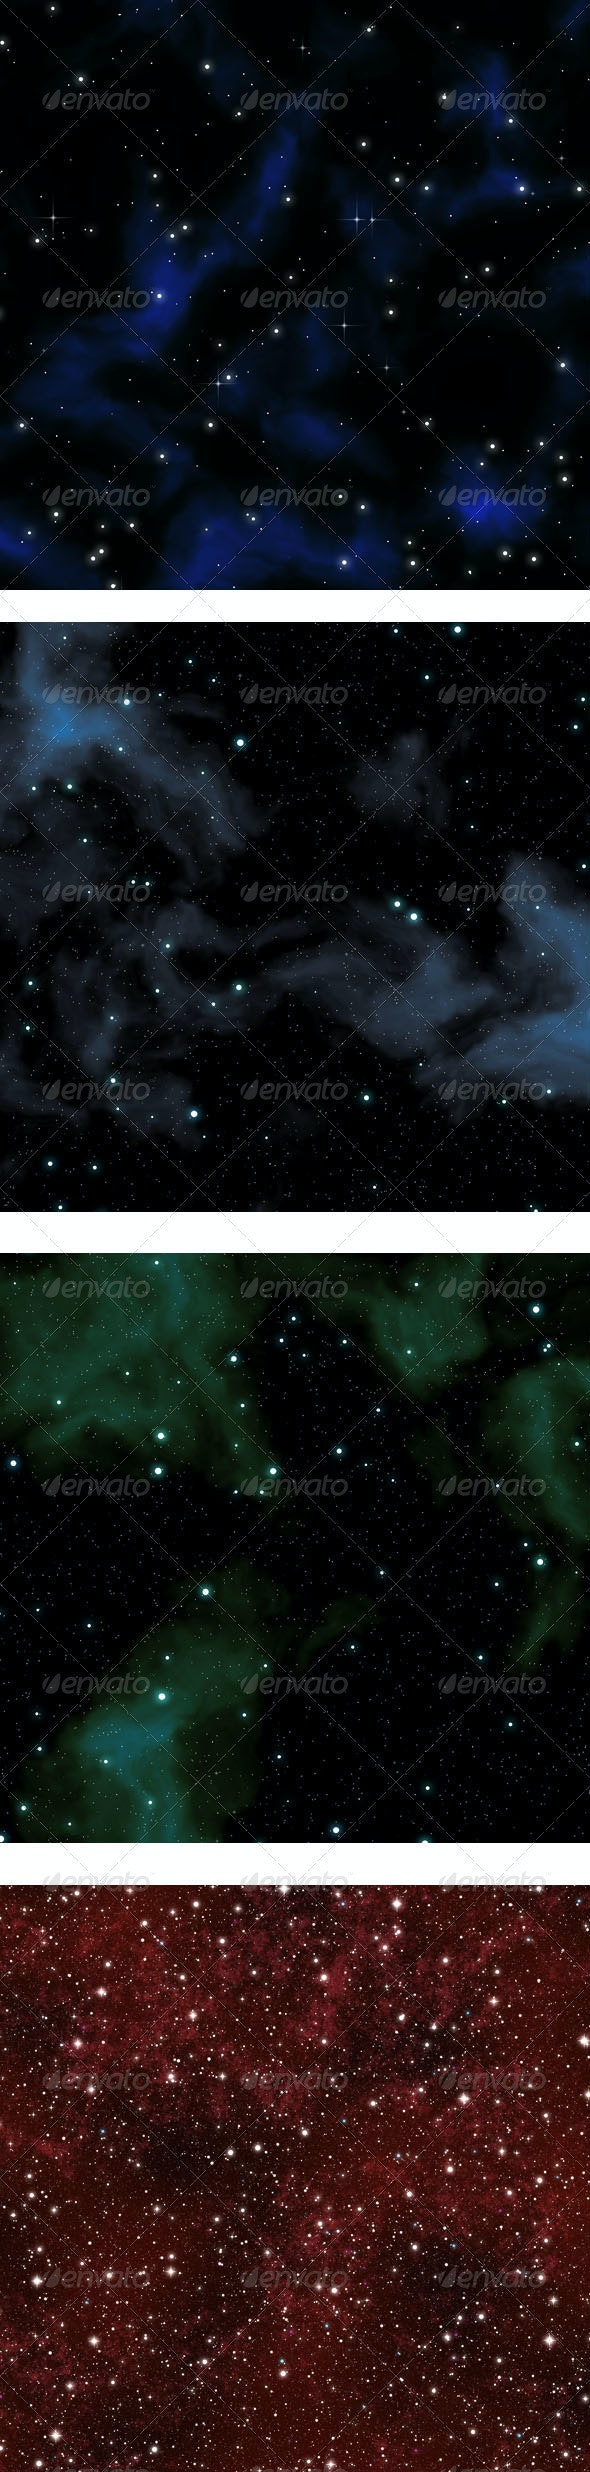 Nebula Backgrounds - Nature Backgrounds